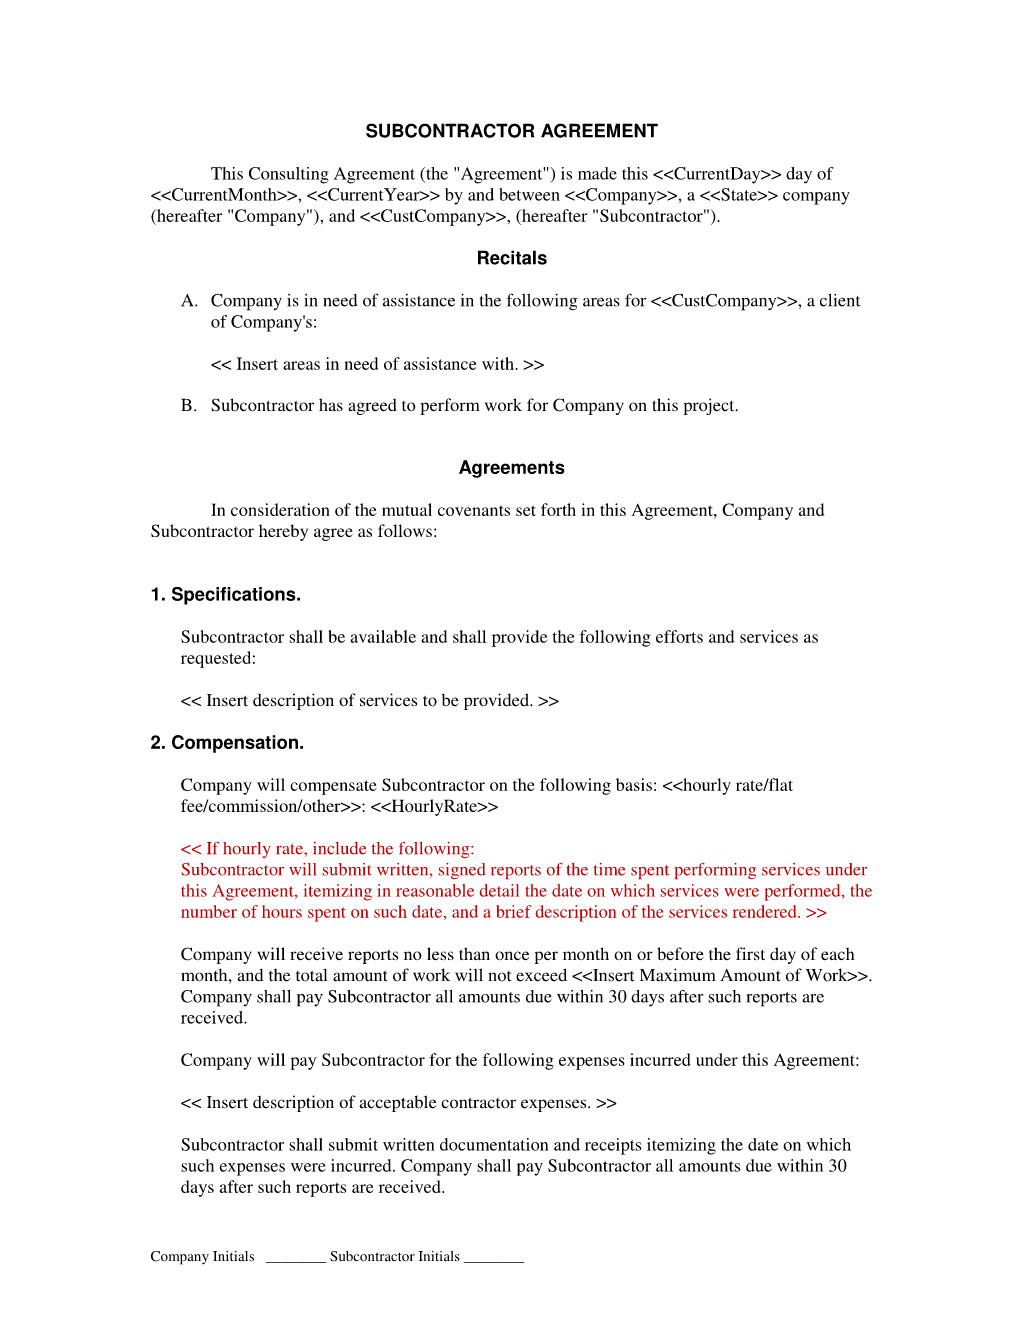 Subcontractor Short Form Contract : Contractor And Employee - Free Printable Subcontractor Agreement